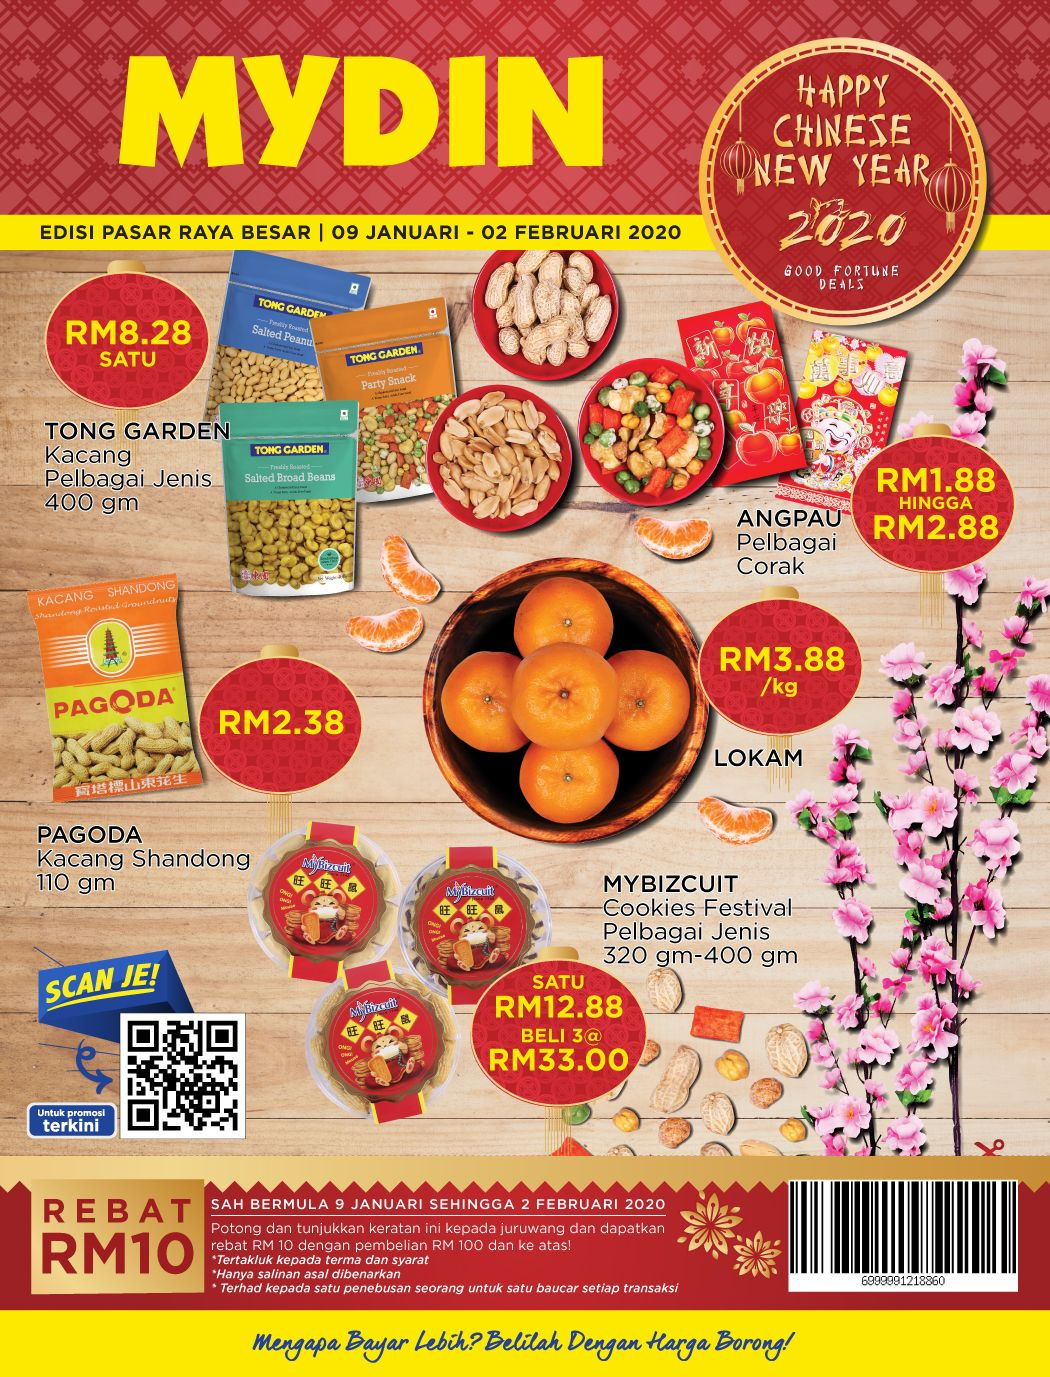 MYDIN Chinese New Year Promotion Catalogue from 9 January